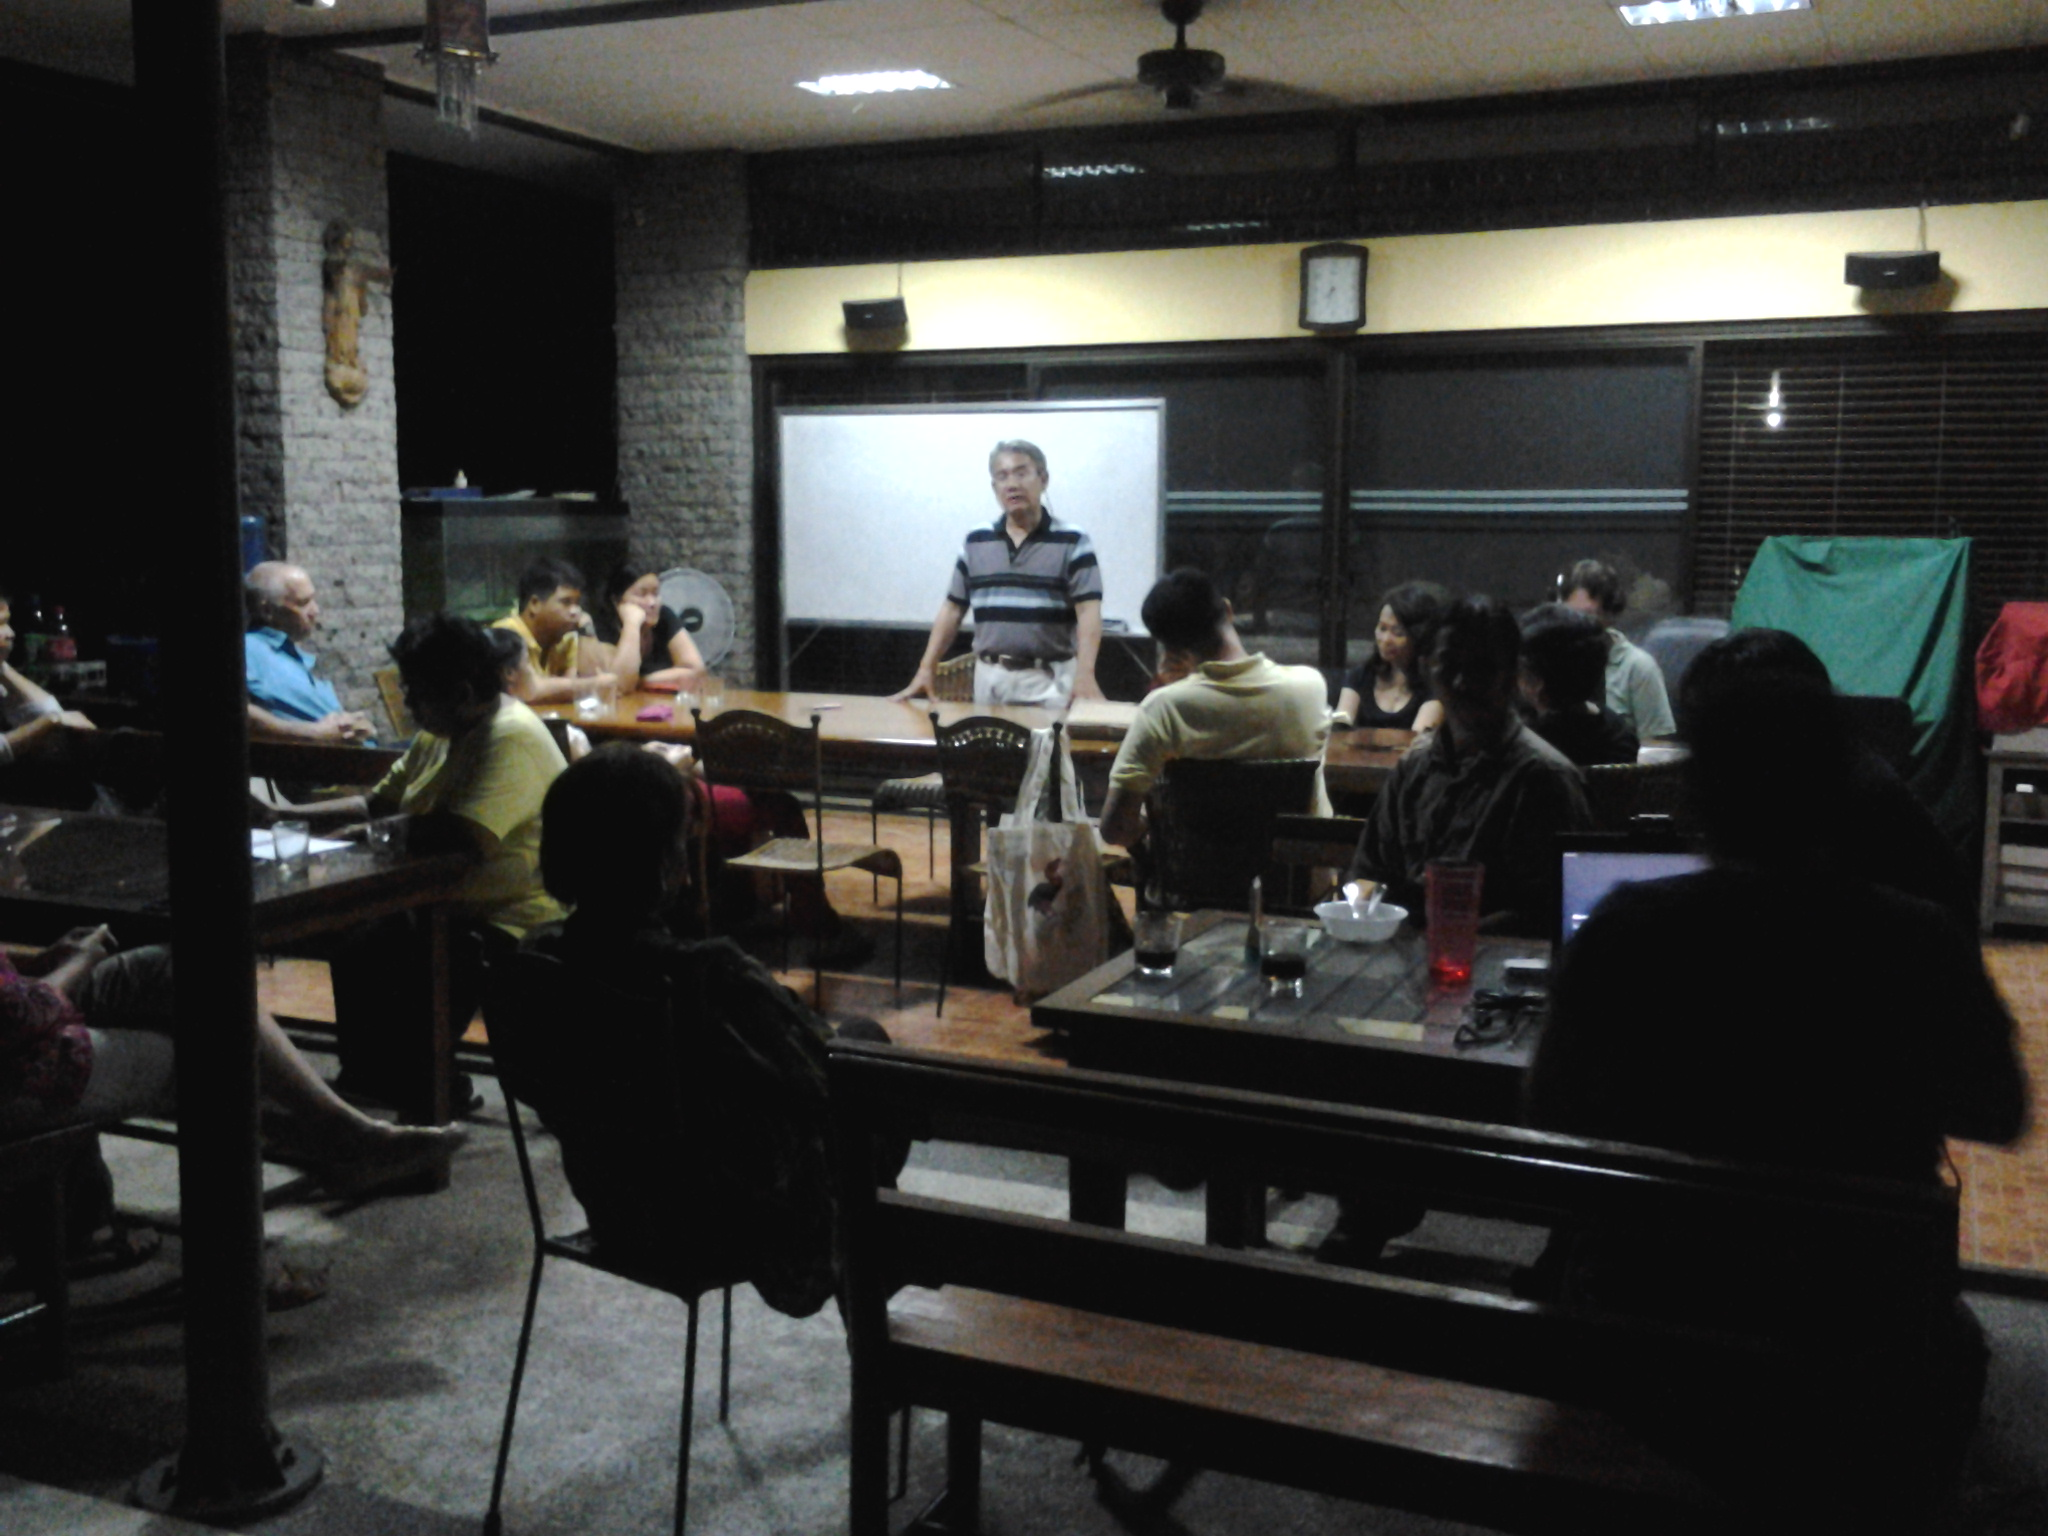 Alex Tiongco leads the discussion about raptor watch and the upcoming Raptor Lecture in August. Photo by Maia Tanedo.